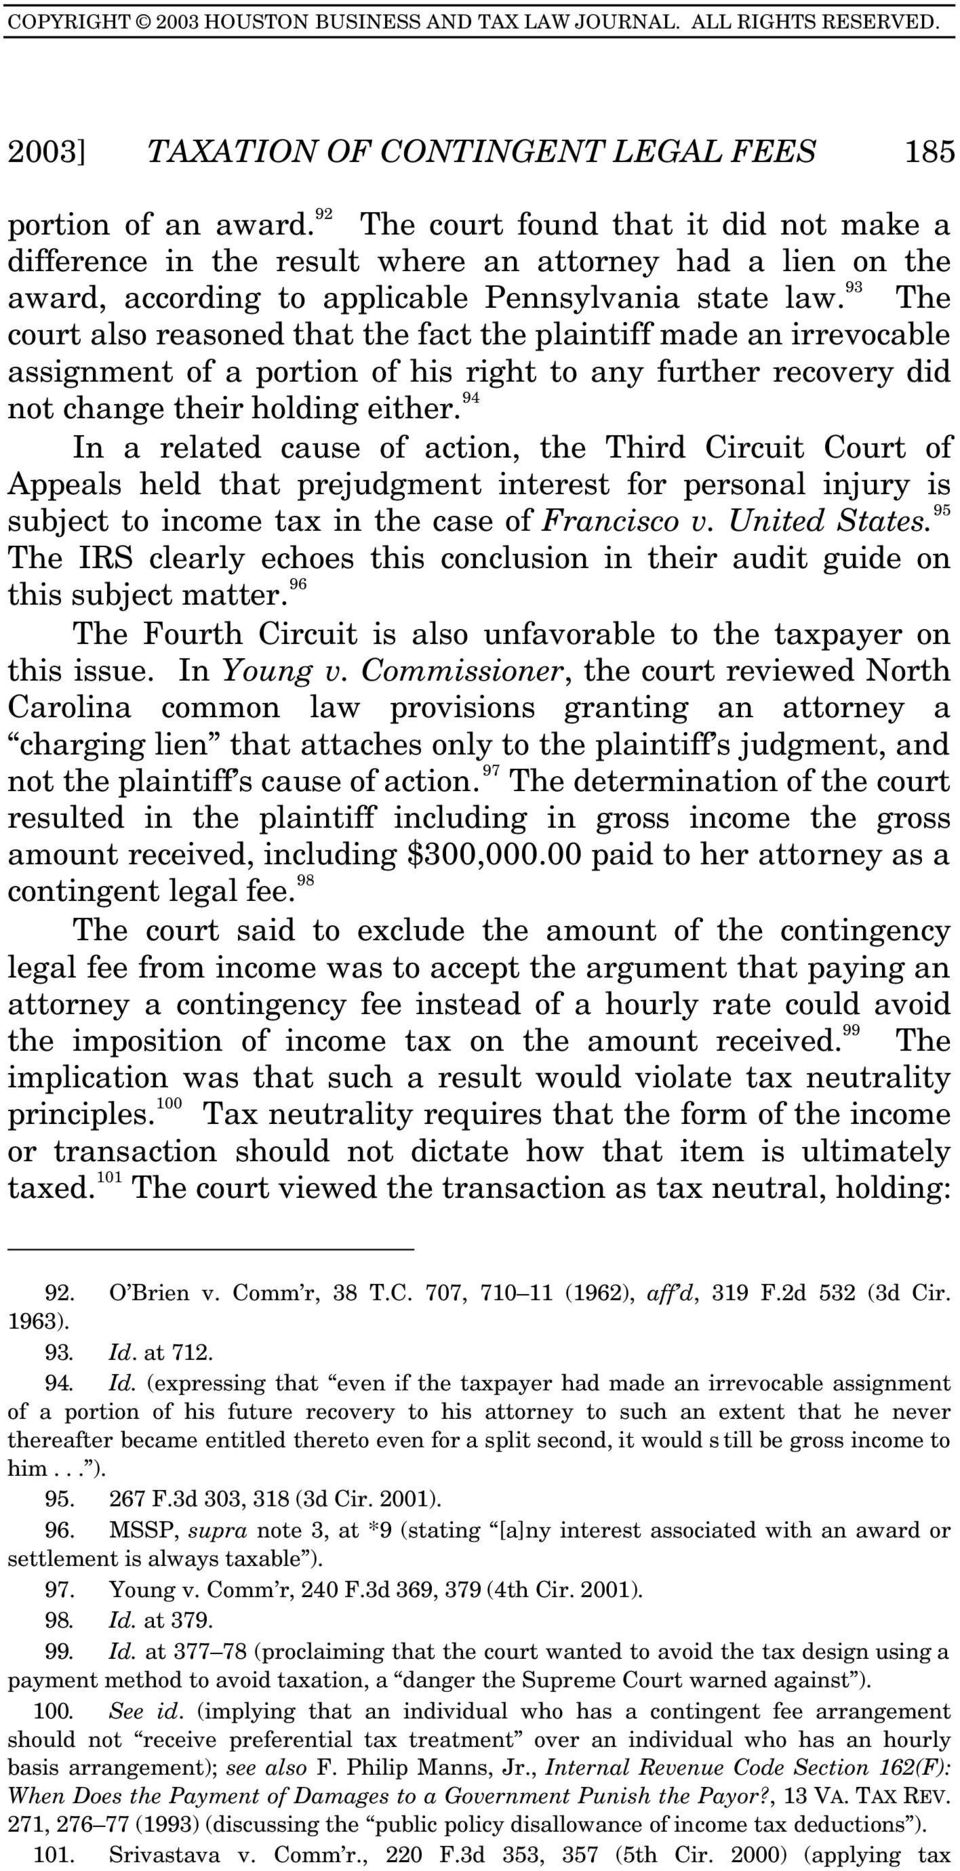 93 The court also reasoned that the fact the plaintiff made an irrevocable assignment of a portion of his right to any further recovery did not change their holding either.